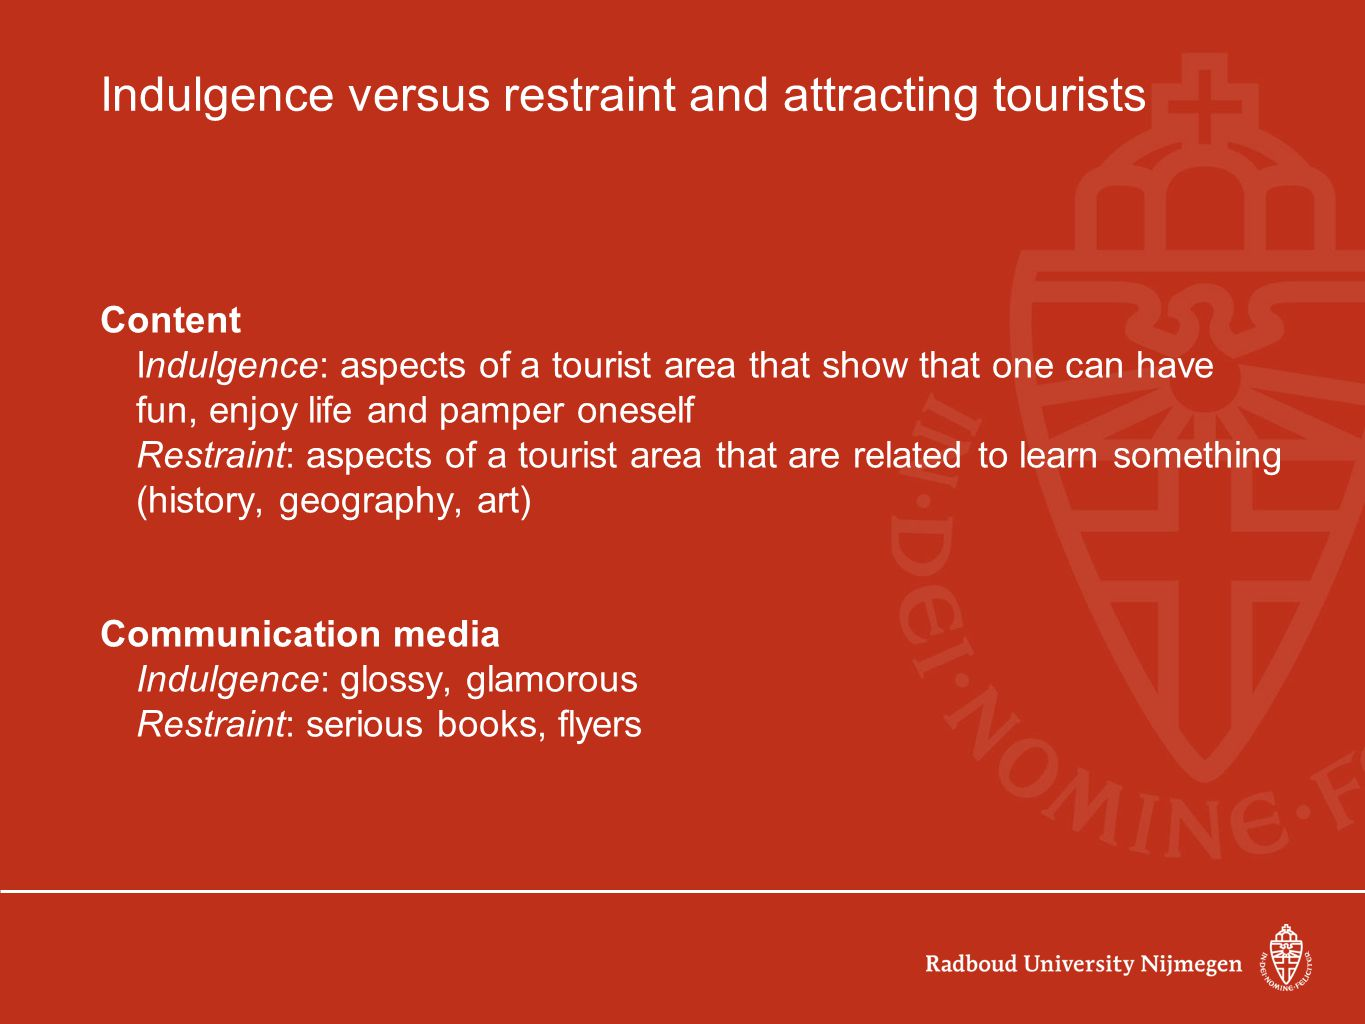 Indulgence versus restraint and attracting tourists